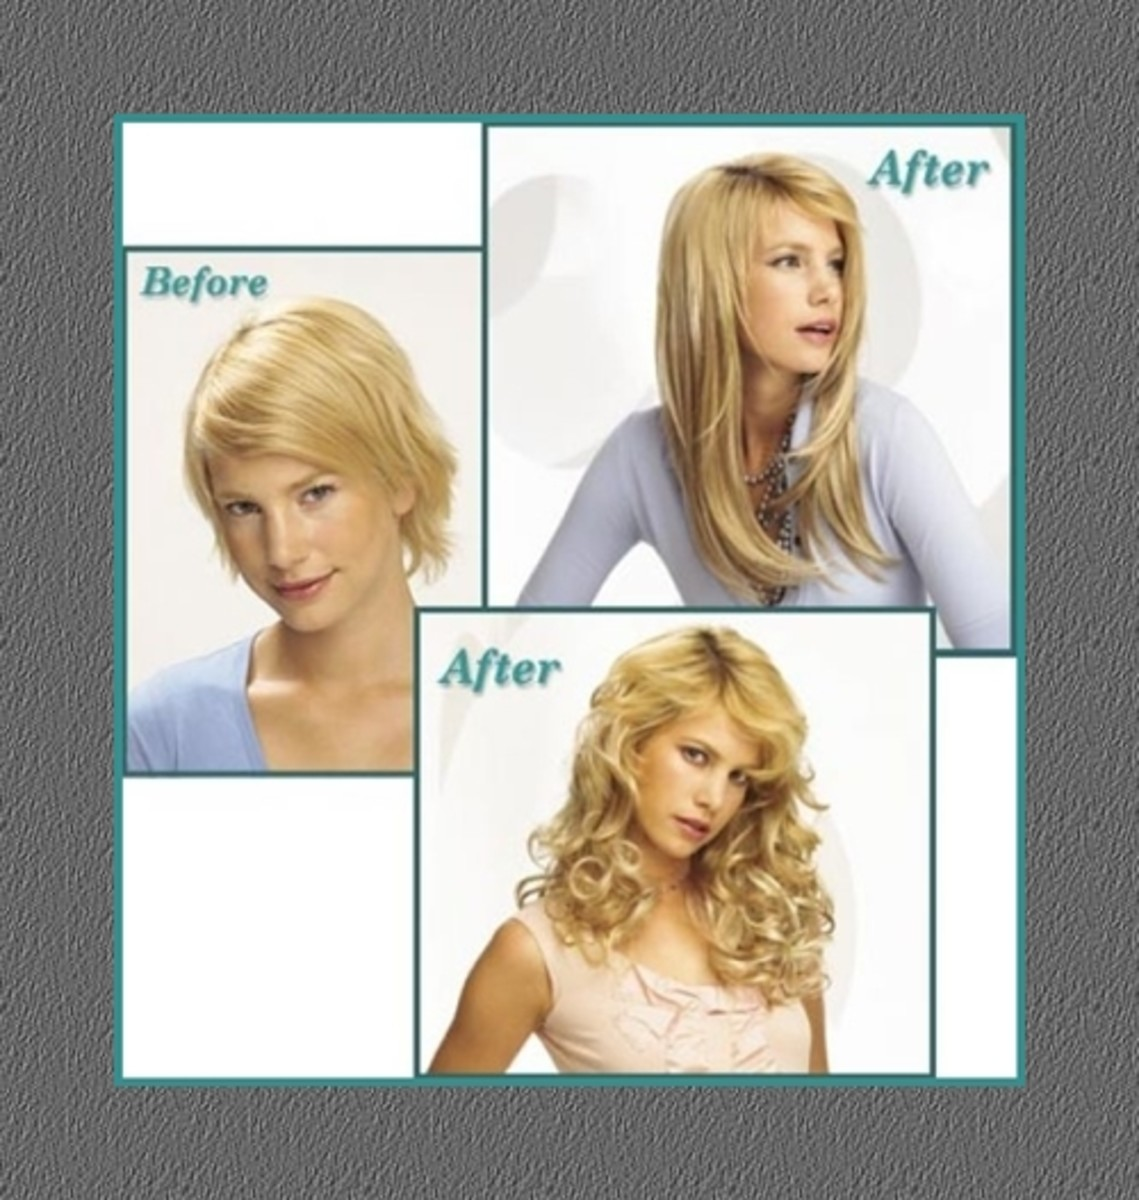 Synthetic Clip Hair Extensions - 2013 Hairstyles for Women - How to wear hair clip extensions, by Rosie2010